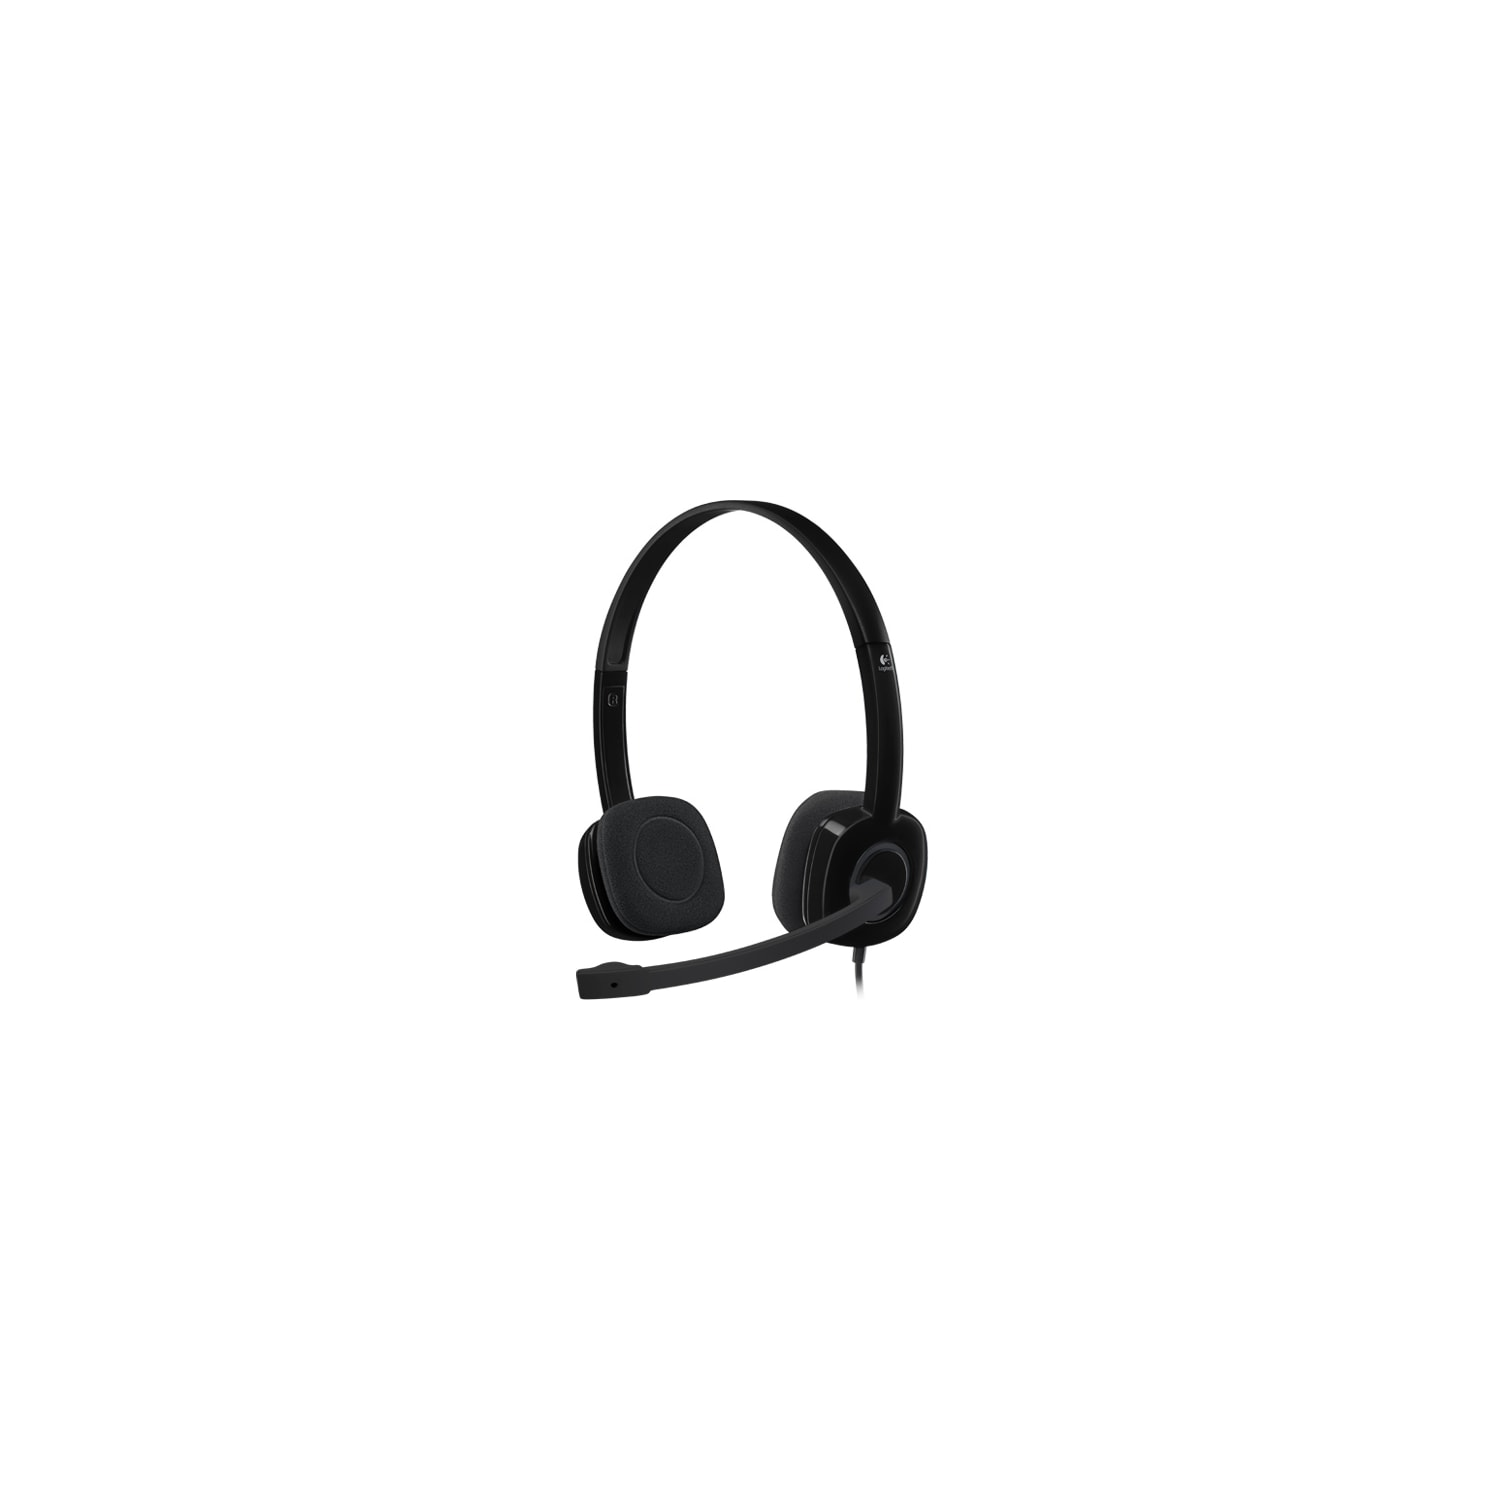 faf03b810ff Buy Logitech H151 Wired Stereo Headset - Over-the-head - Supra-aural ...